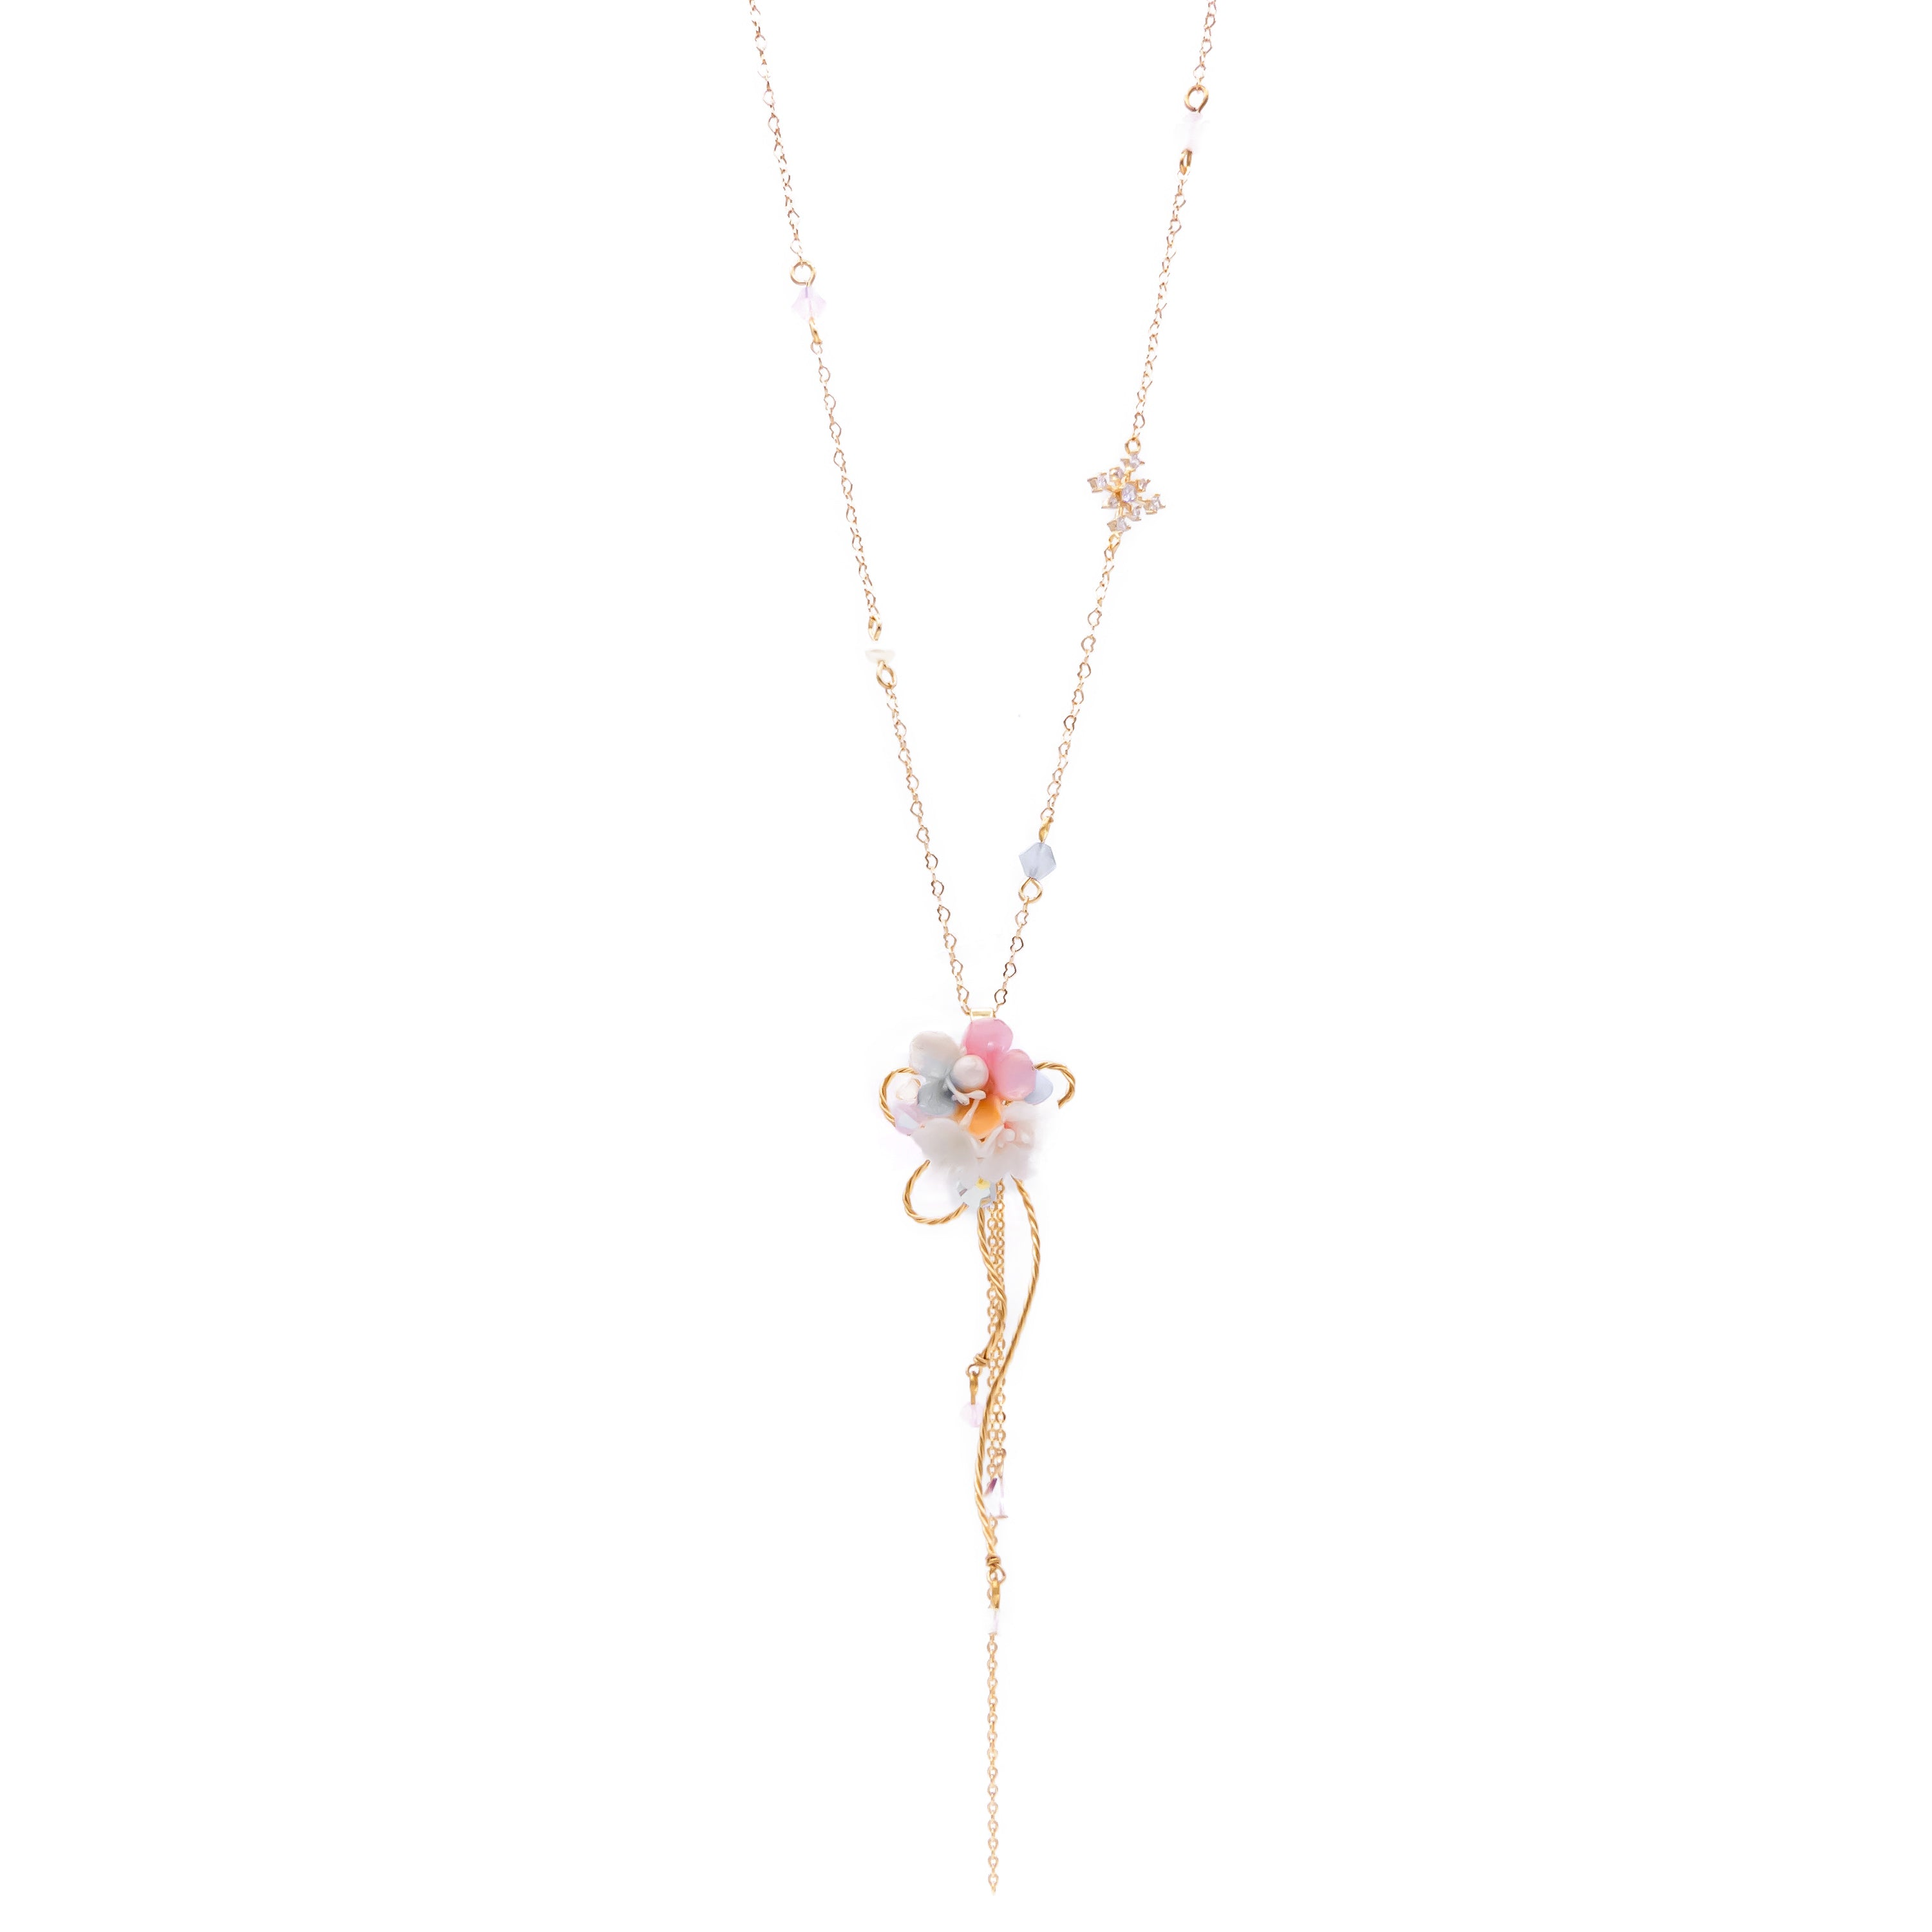 Strawberry Morganite 14K Gold-plated 925 Silver Long Necklace